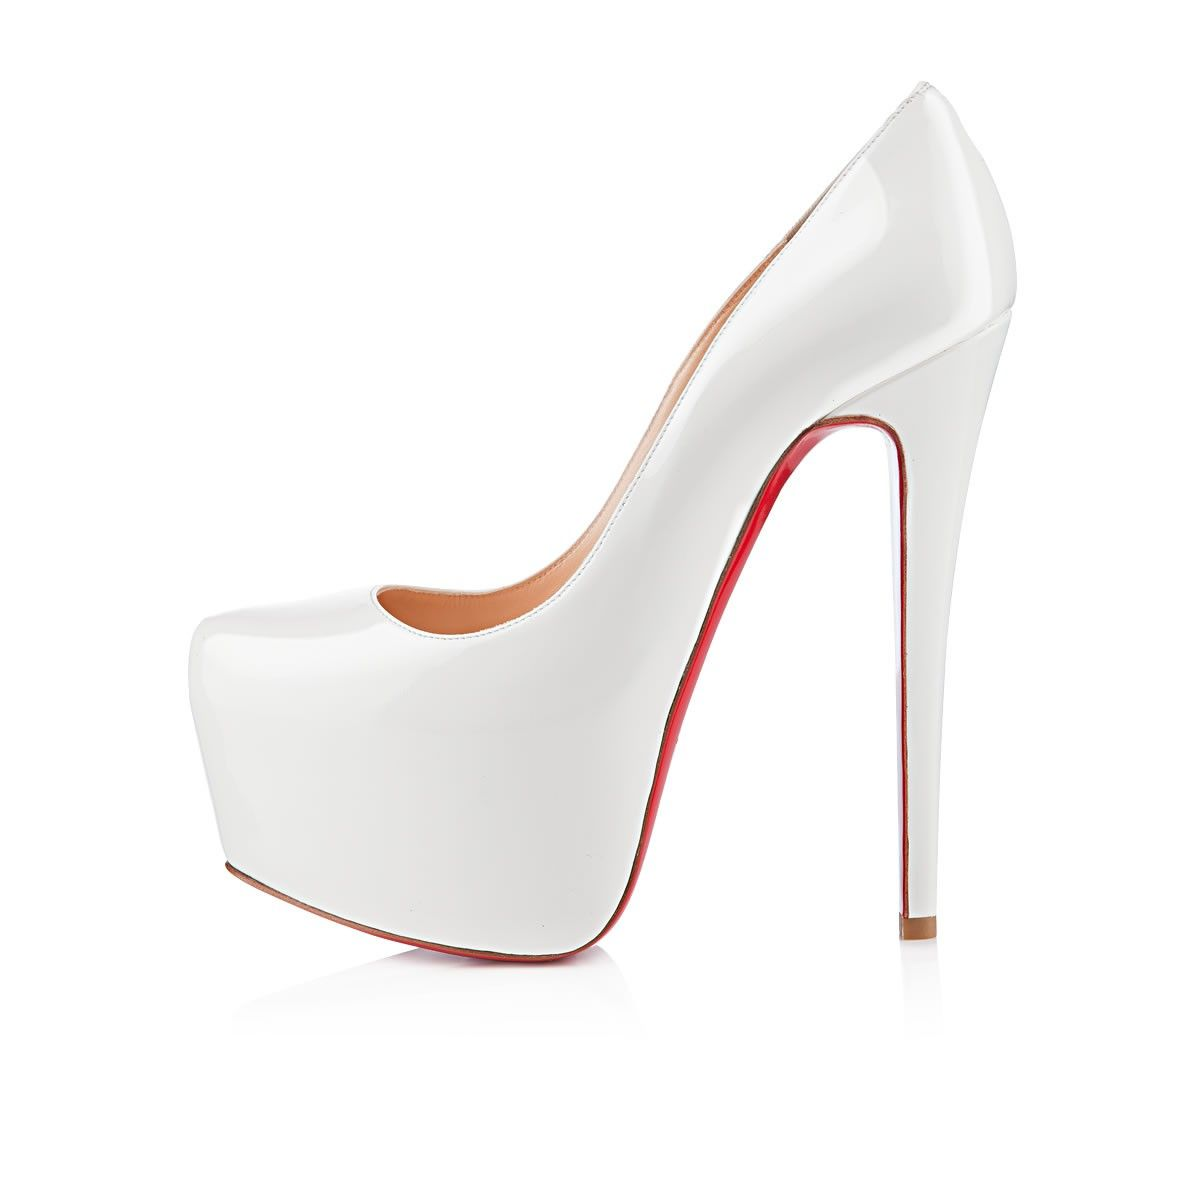 Christian Louboutin Daffodile 160mm white patent leather